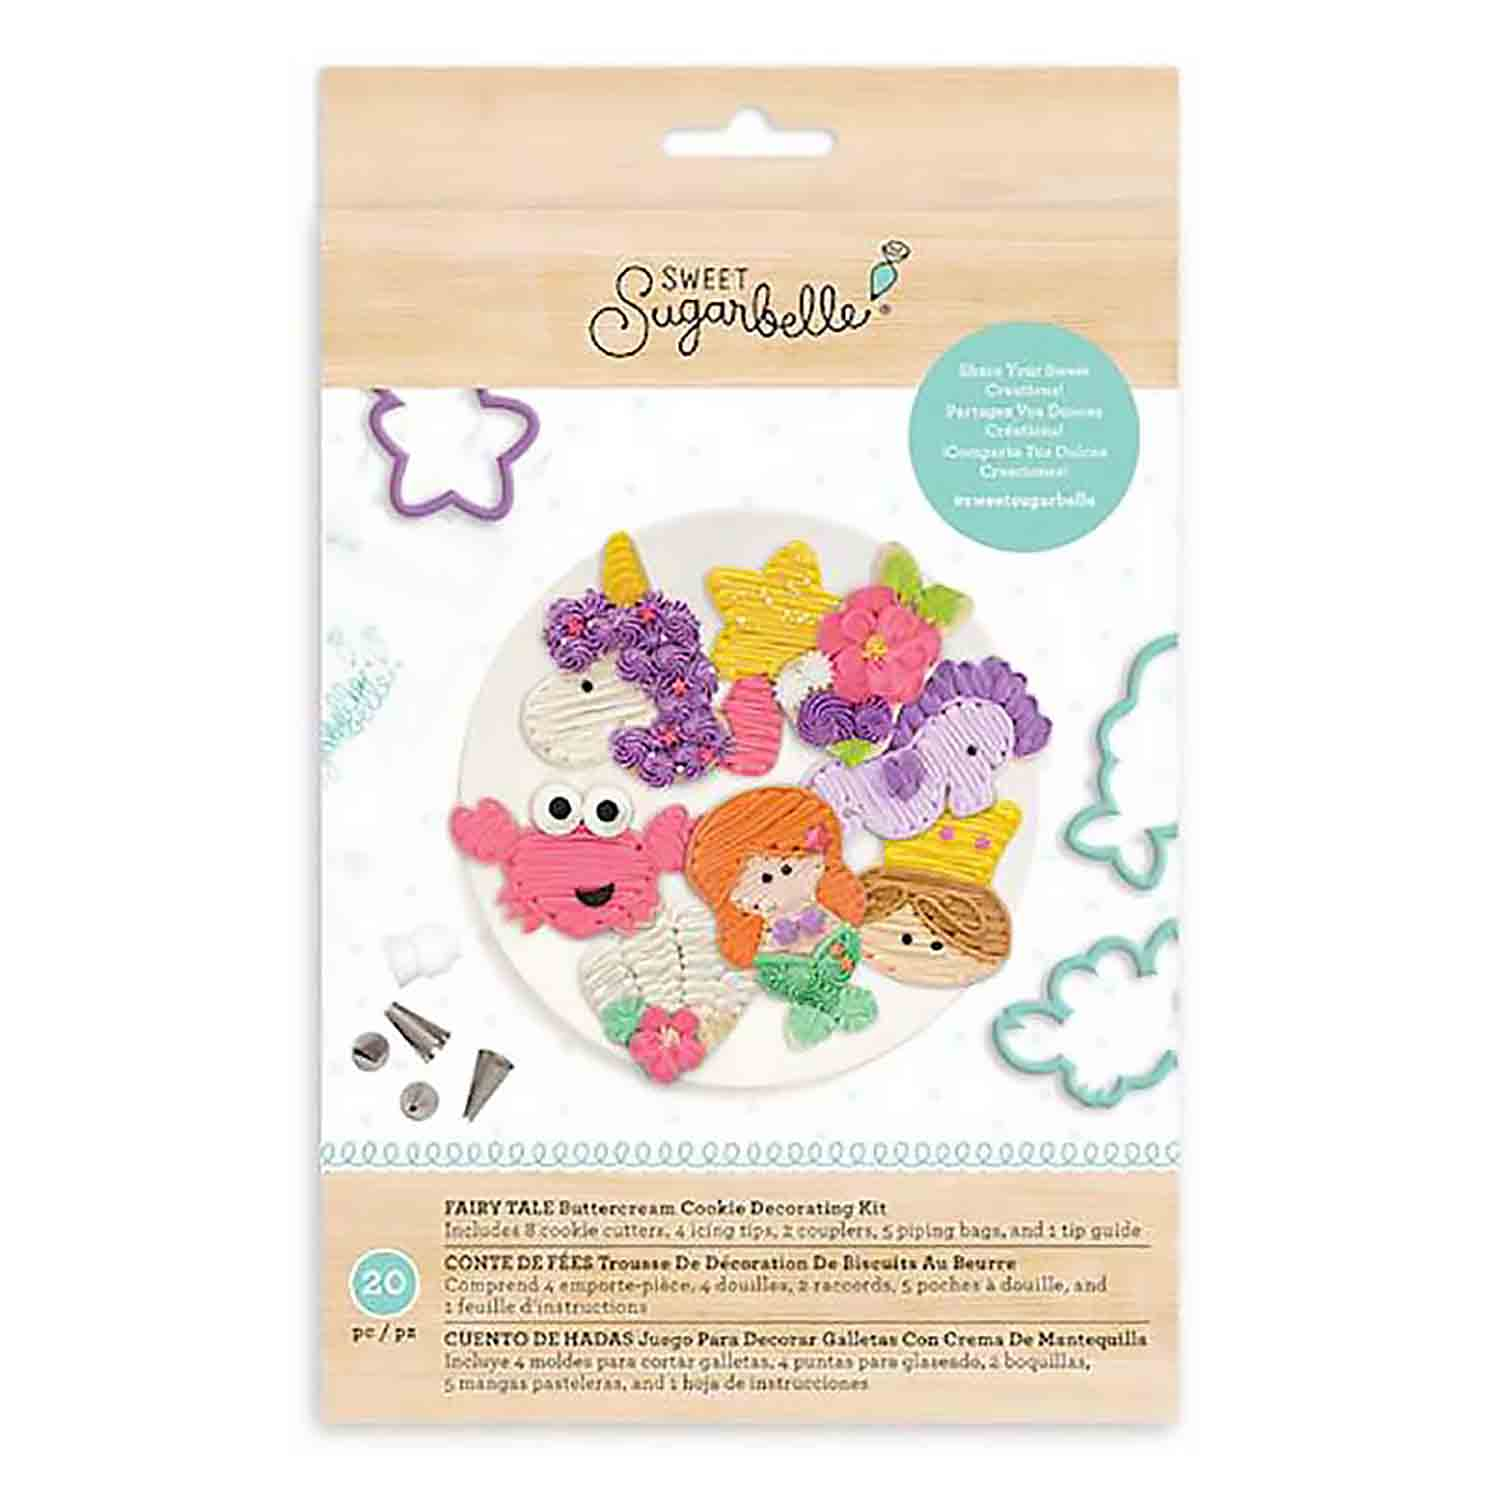 Fairy Tale Buttercream Cookie Decorating Kit